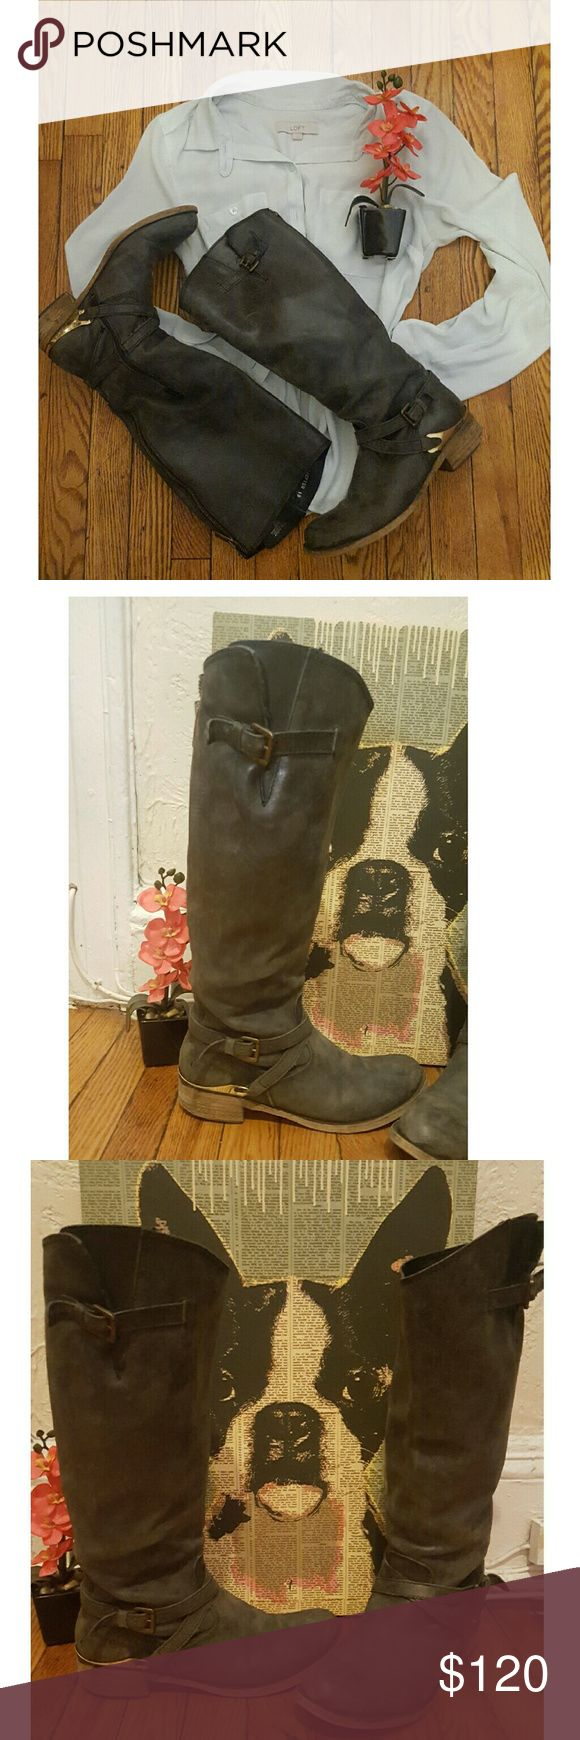 Steve Madden Shepton Leather Tall Riding Boots 10 Really nice condition..just normal wear on heels.. no smells.. leather is stunning.. Color is like a dark charcoal grayish color. Has a gold decor on heel area.. I got plenty compliments when I'd wear em Steve Madden Shoes Heeled Boots